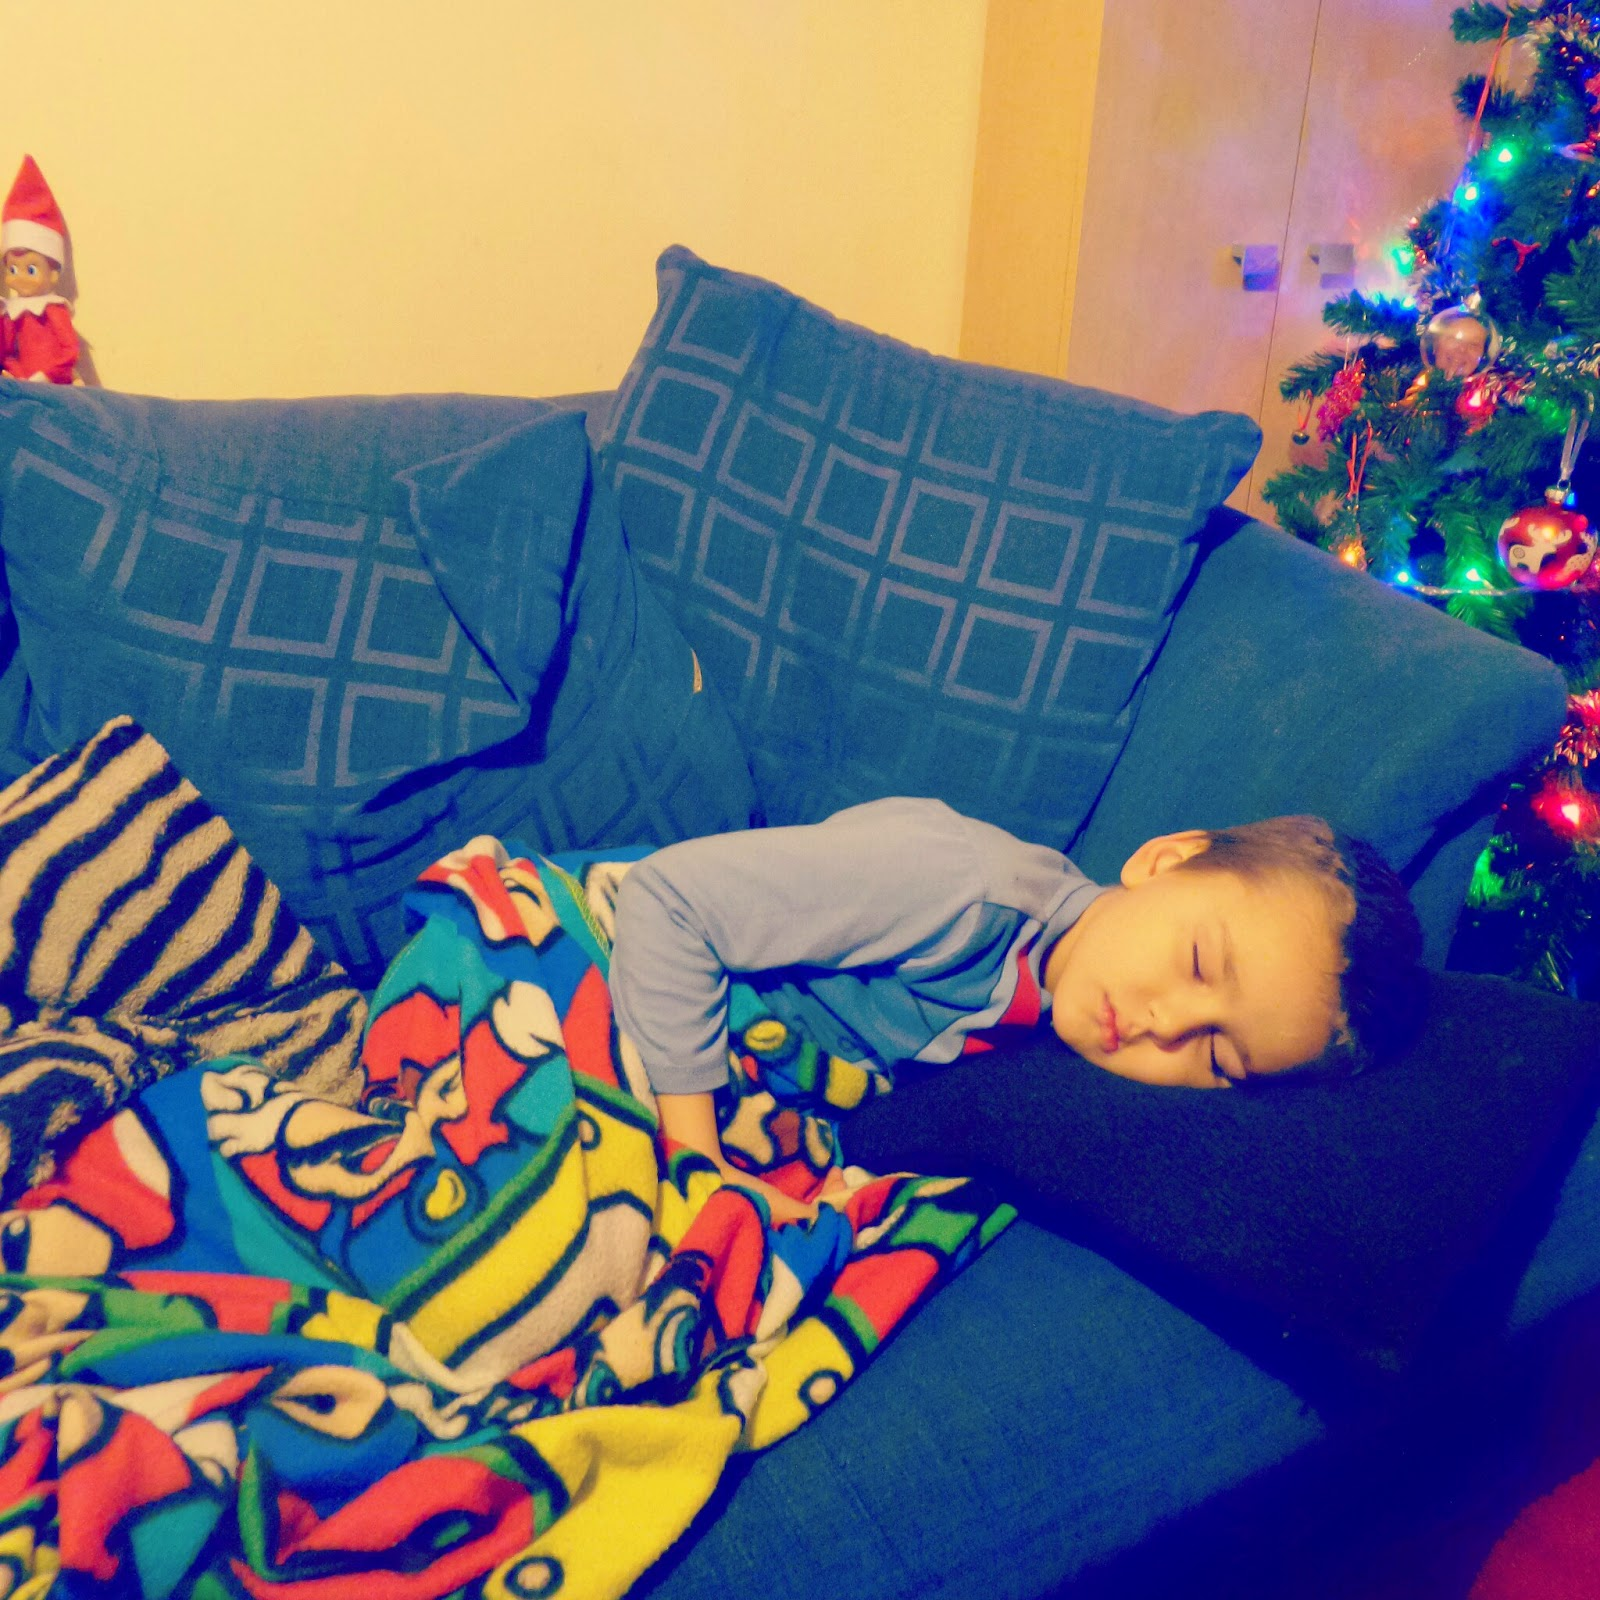 Big Boy asleep and poorly on the sofa